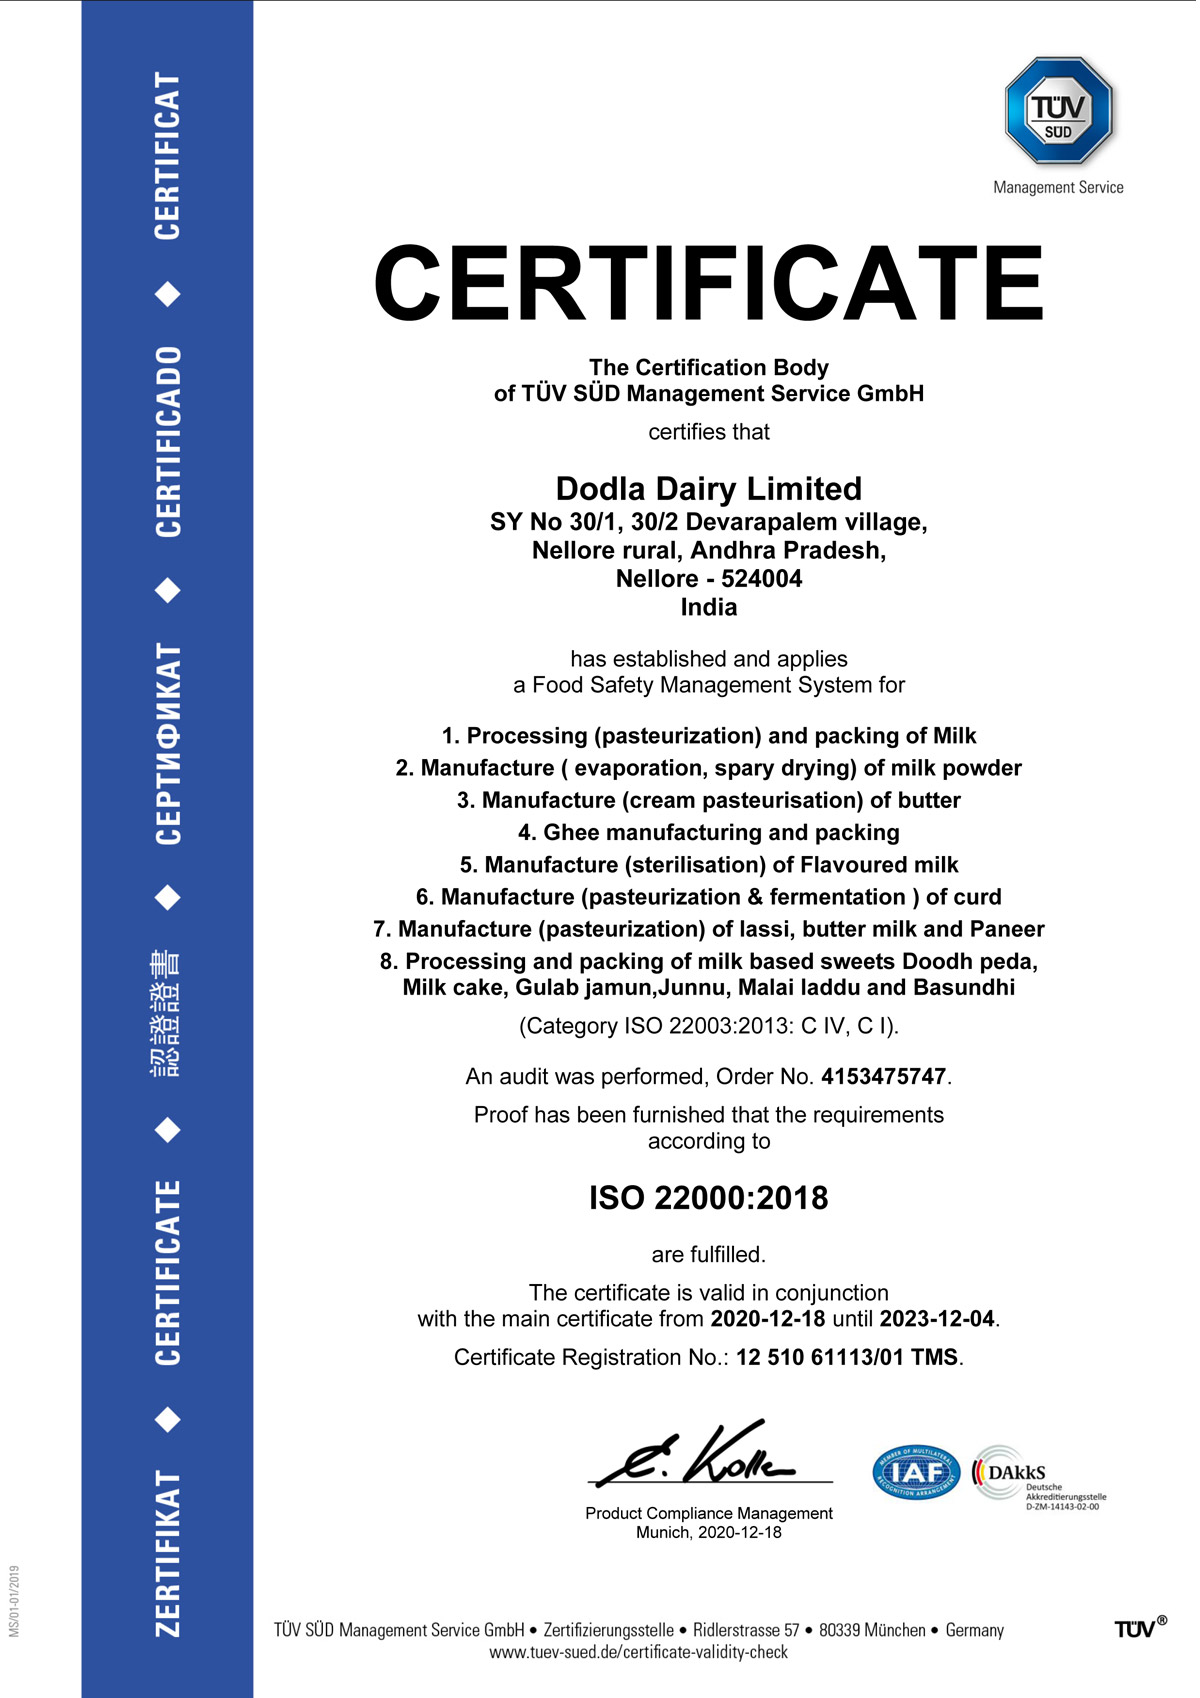 Quality And Certification - Dodla Diary